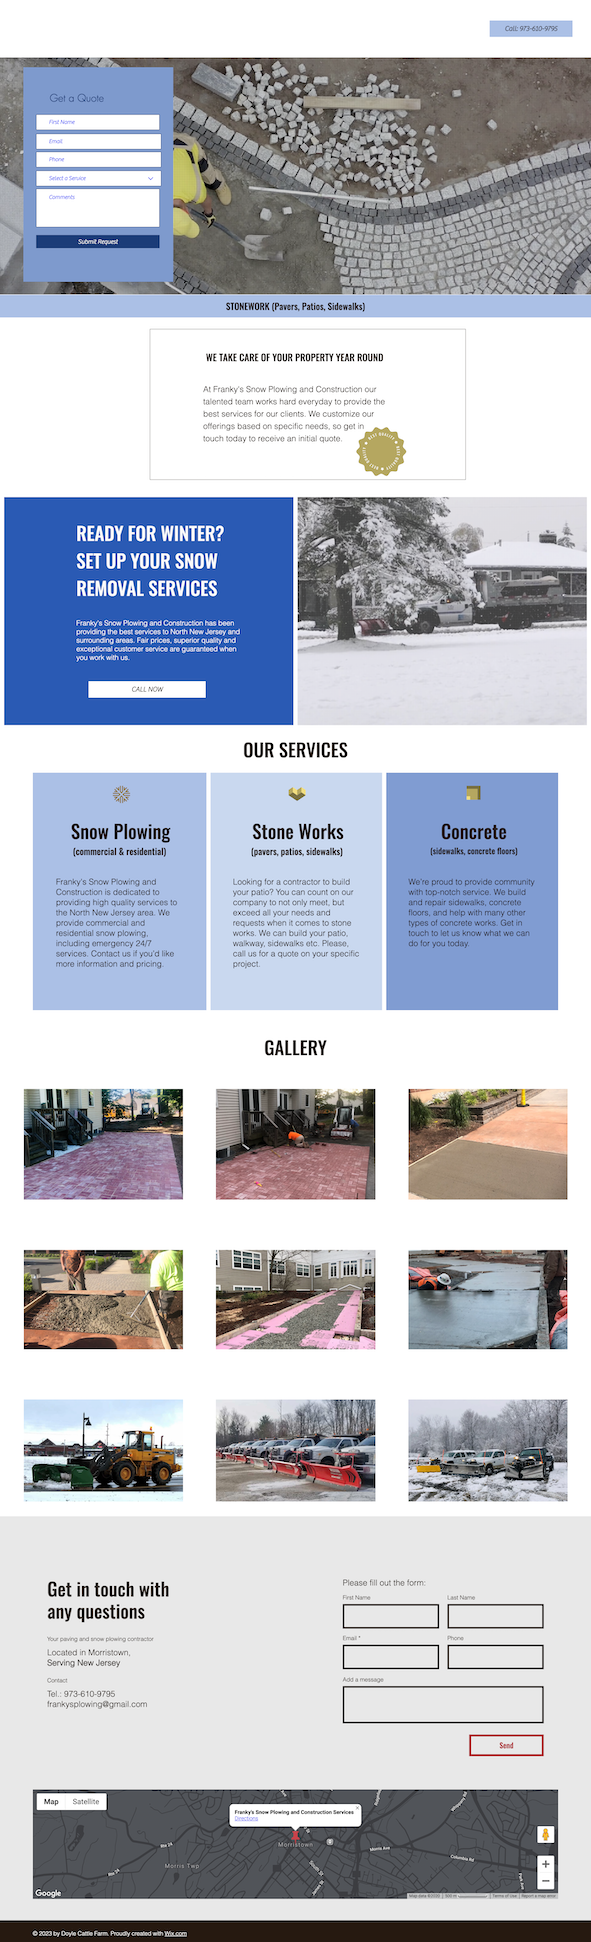 Website design for Snow Plowing and Construction company in New Jersey